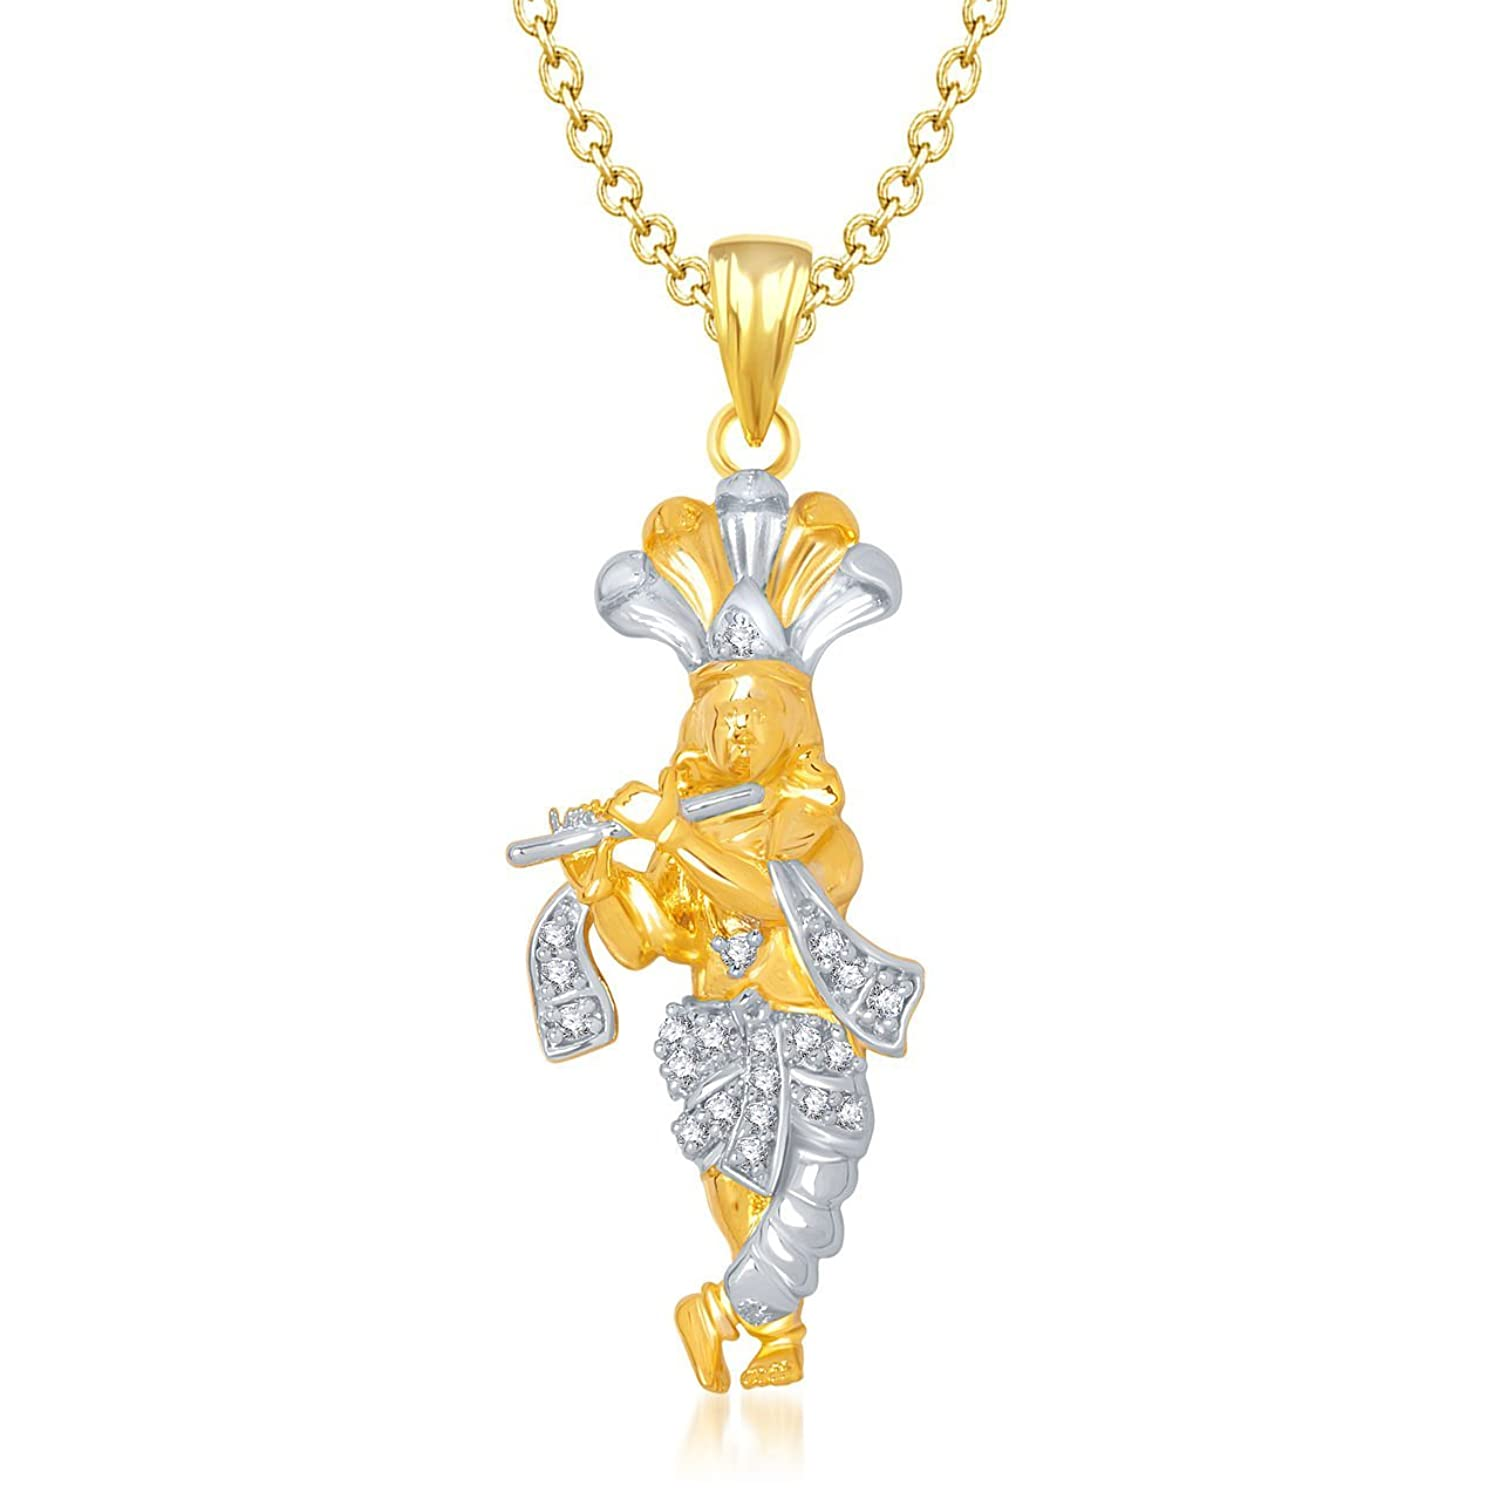 hands hiphop pendants product necklace male praying pendant set hop rhinestone gun out jewelry lockets iced uodesign hip micro angel mens store